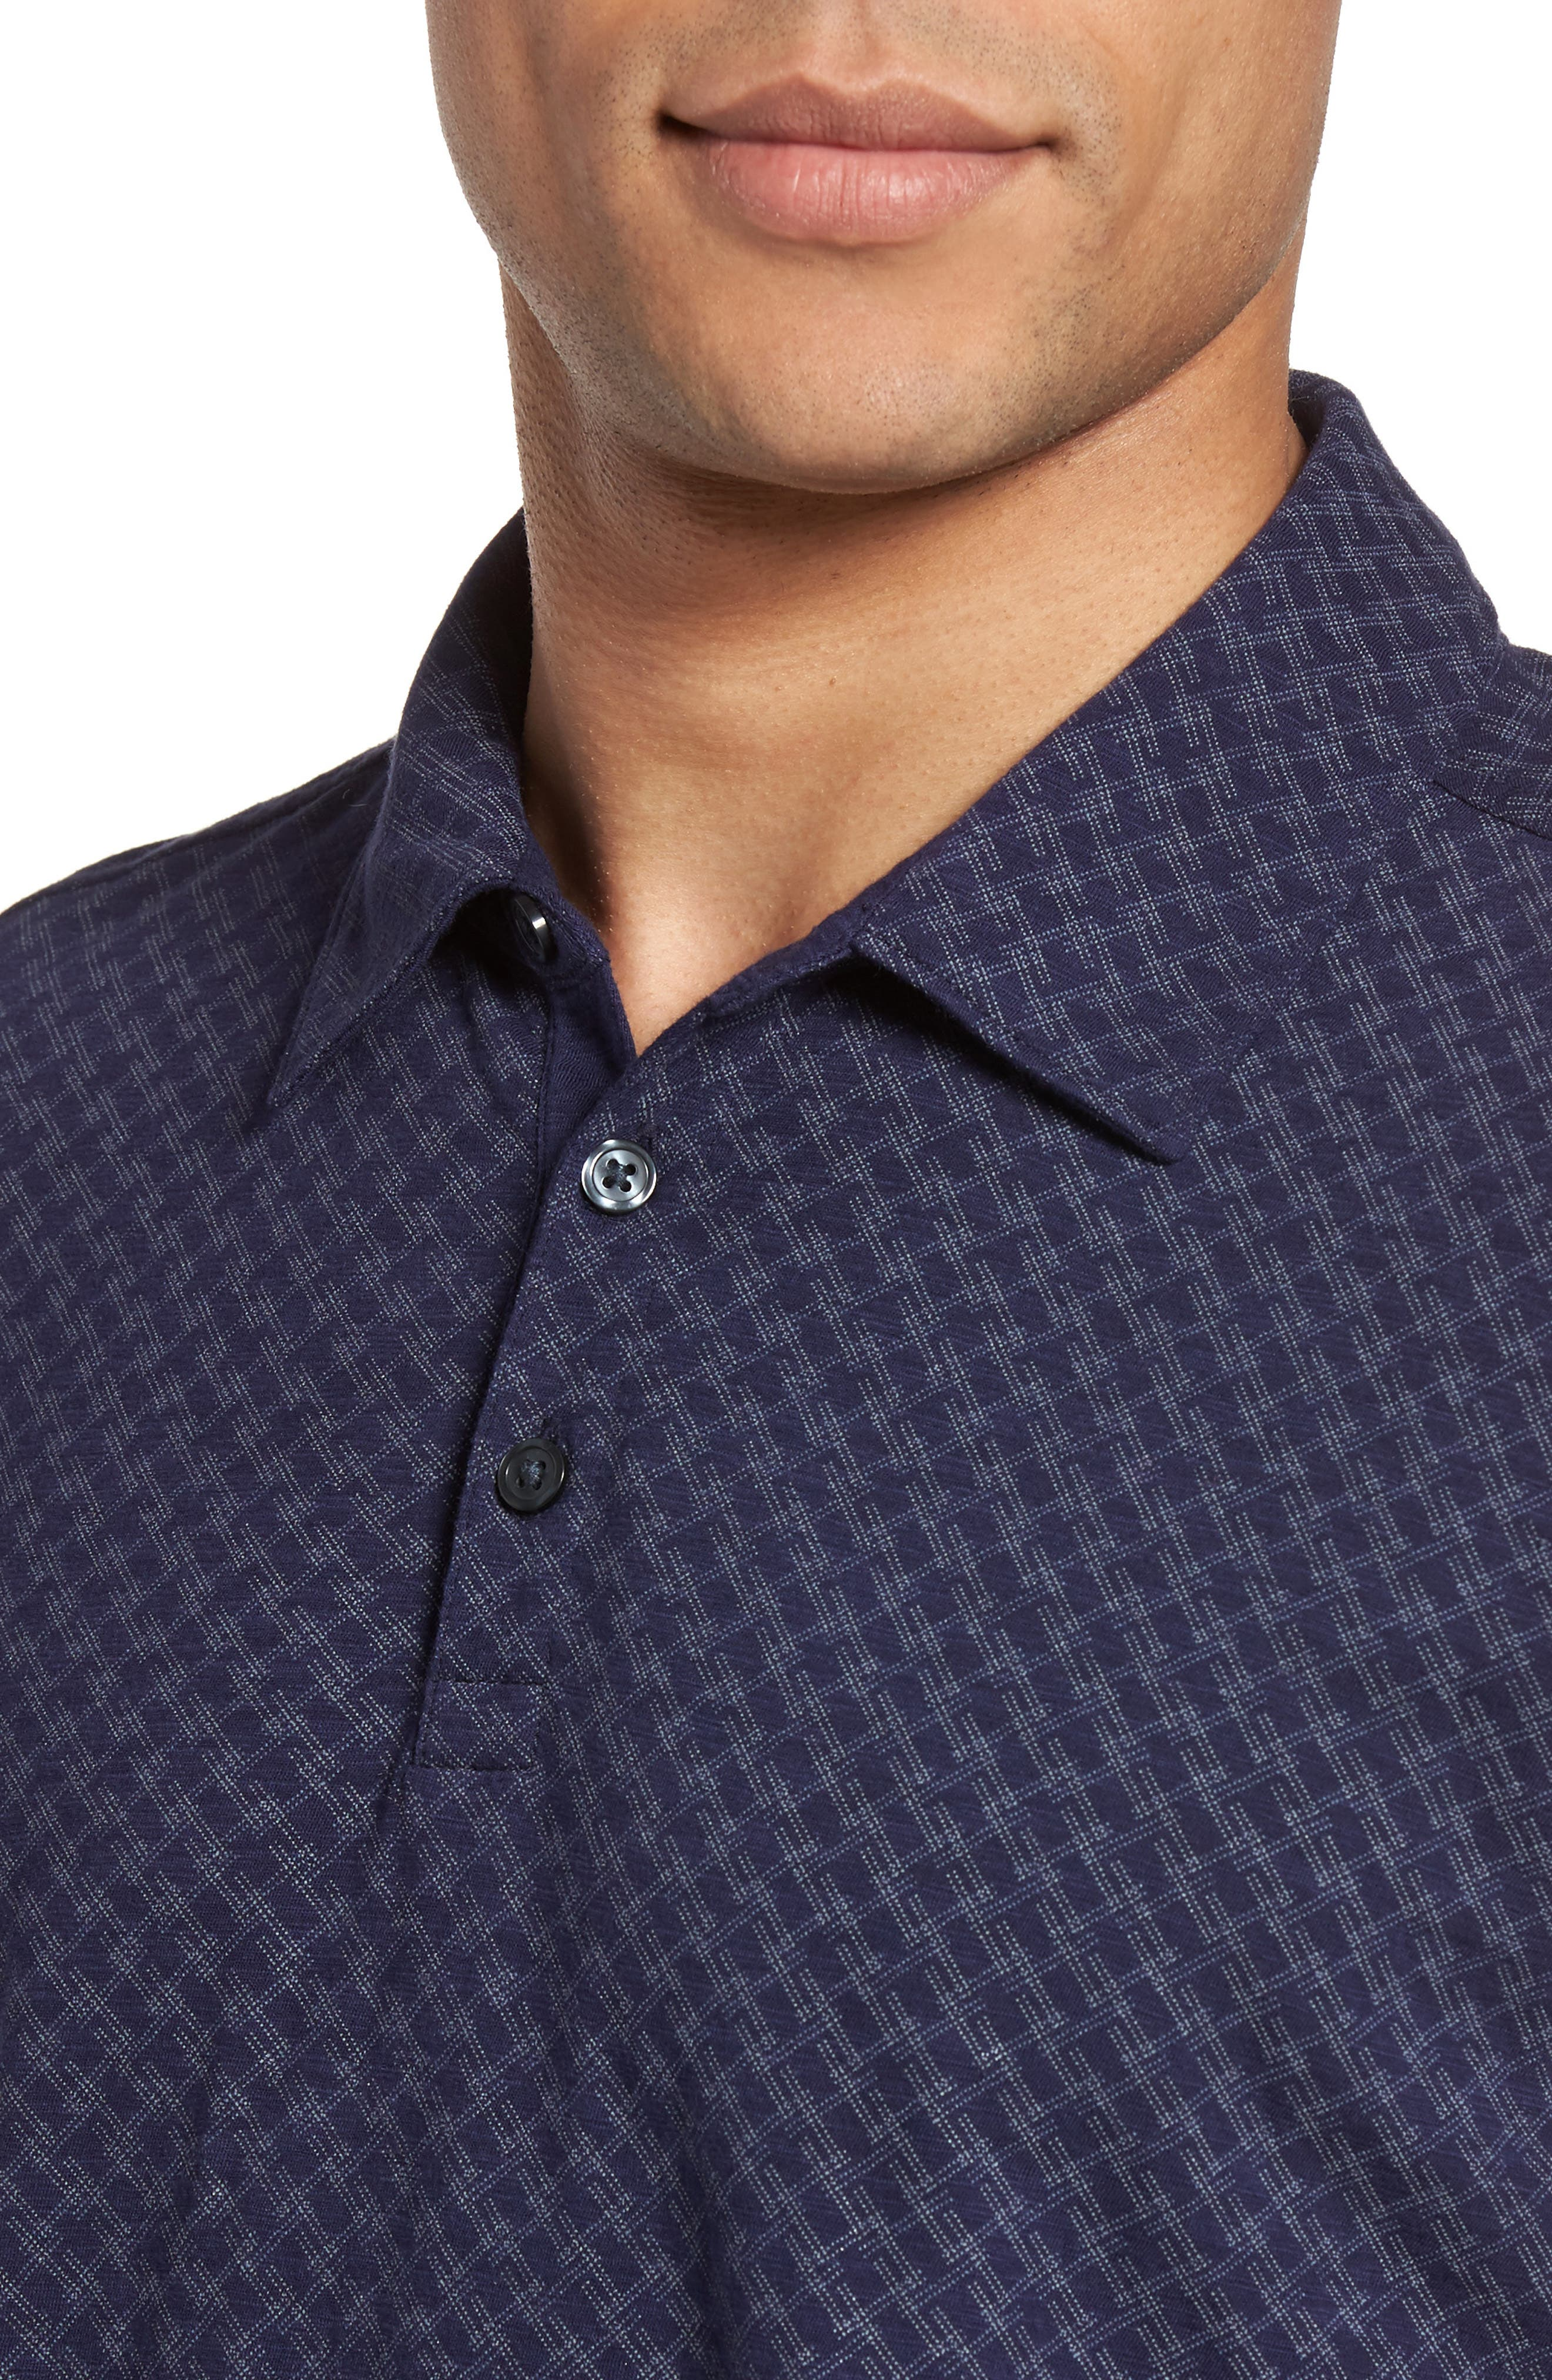 Mays Print Jersey Polo,                             Alternate thumbnail 4, color,                             Navy